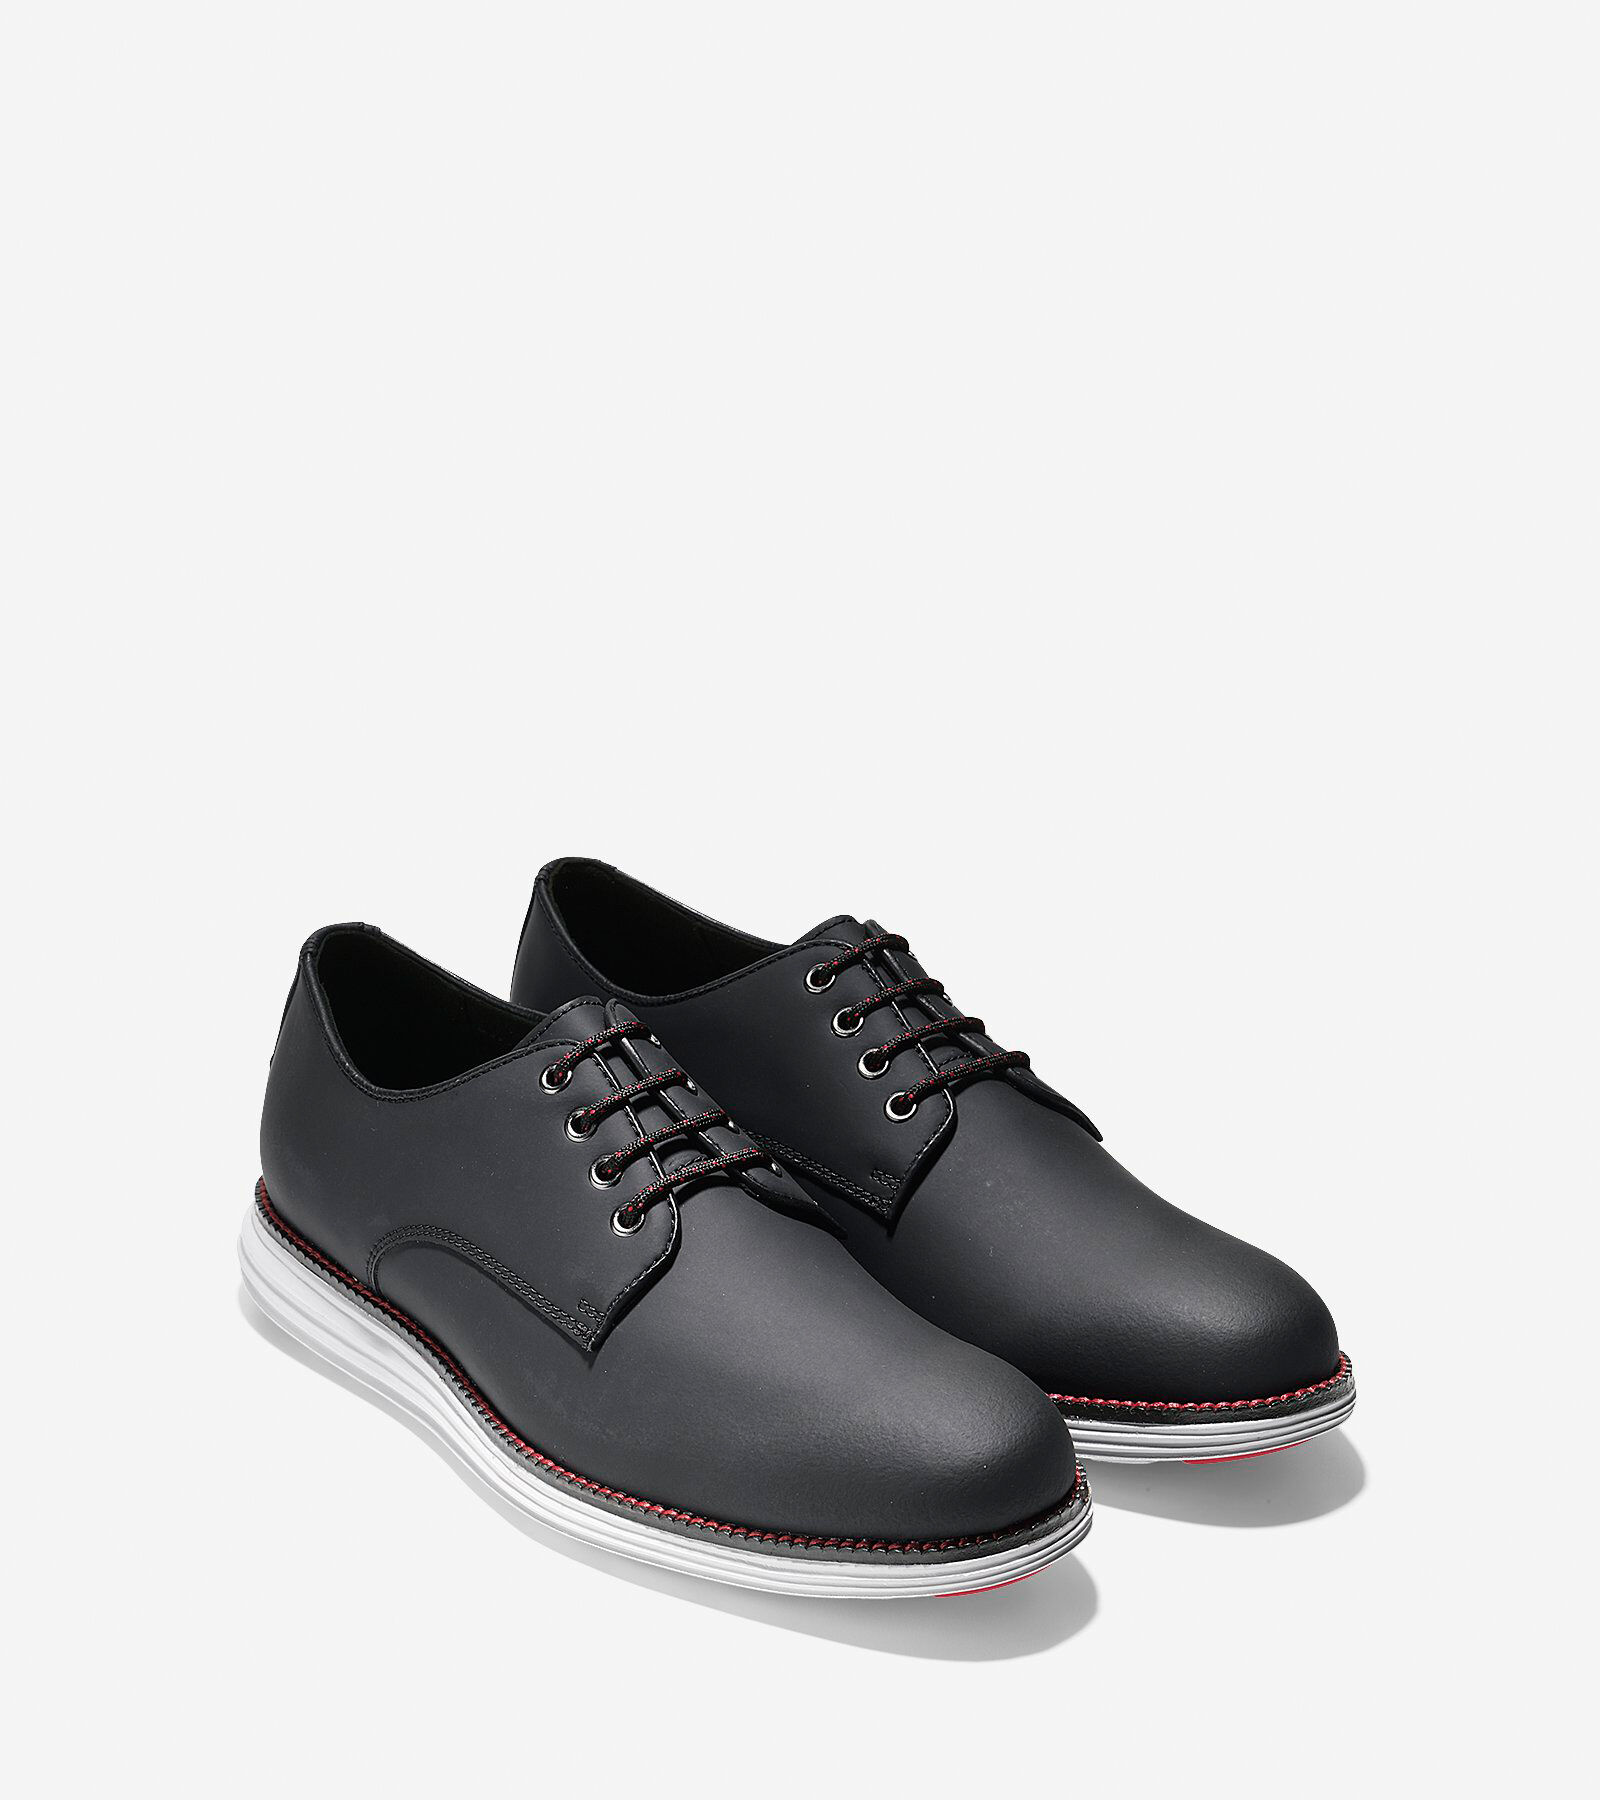 ... Men's ØriginalGrand Plain Toe Oxford; Men's ØriginalGrand Plain Toe  Oxford. #colehaan